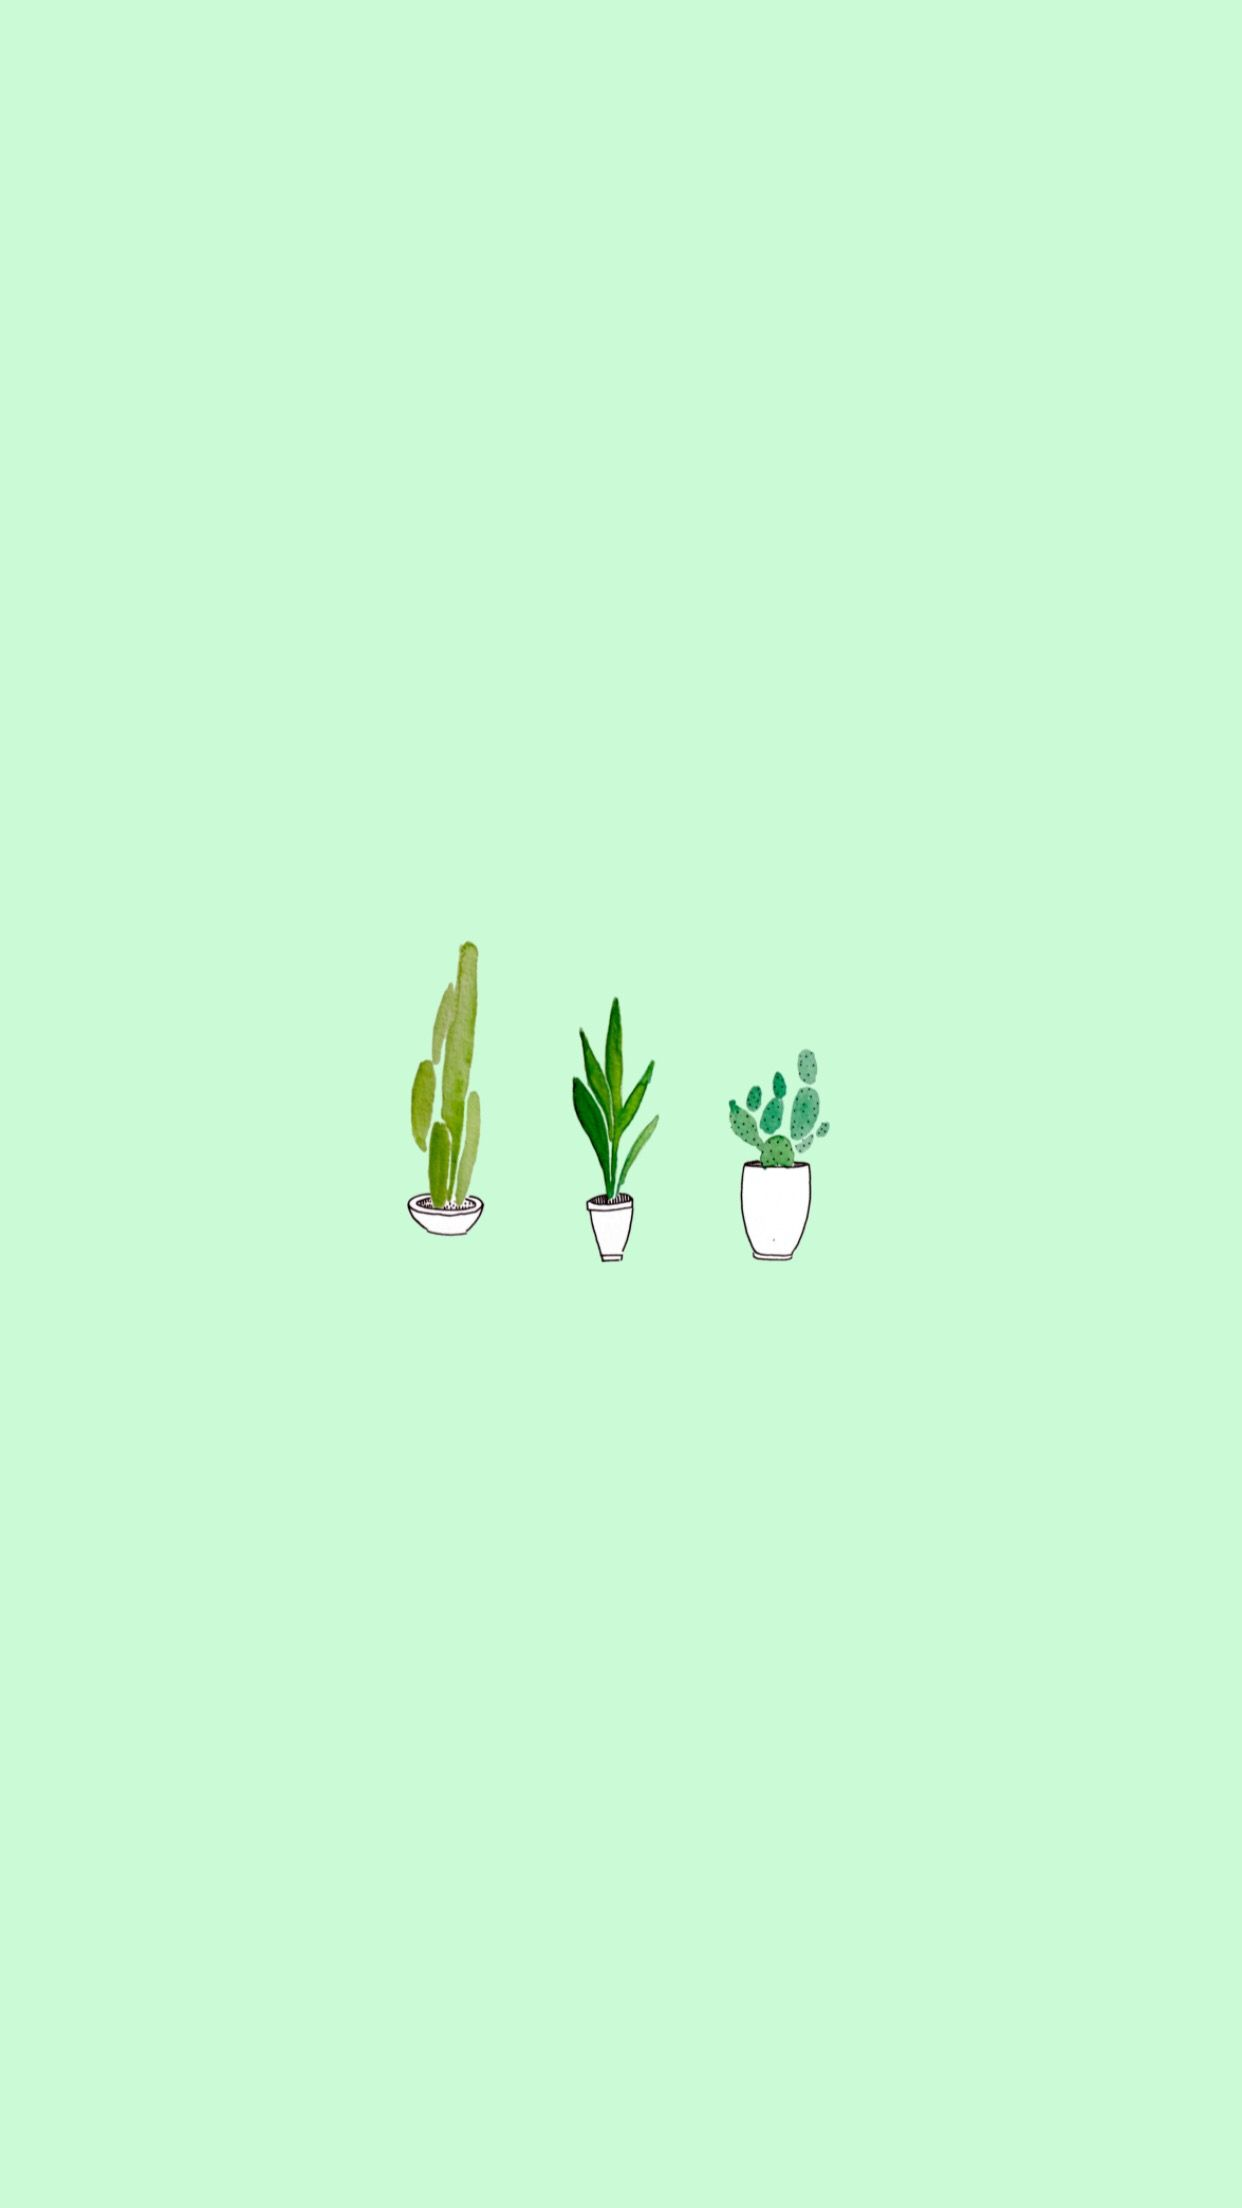 Pin By Lizzy Wagner On Wallpapers In 2019 Mint Green